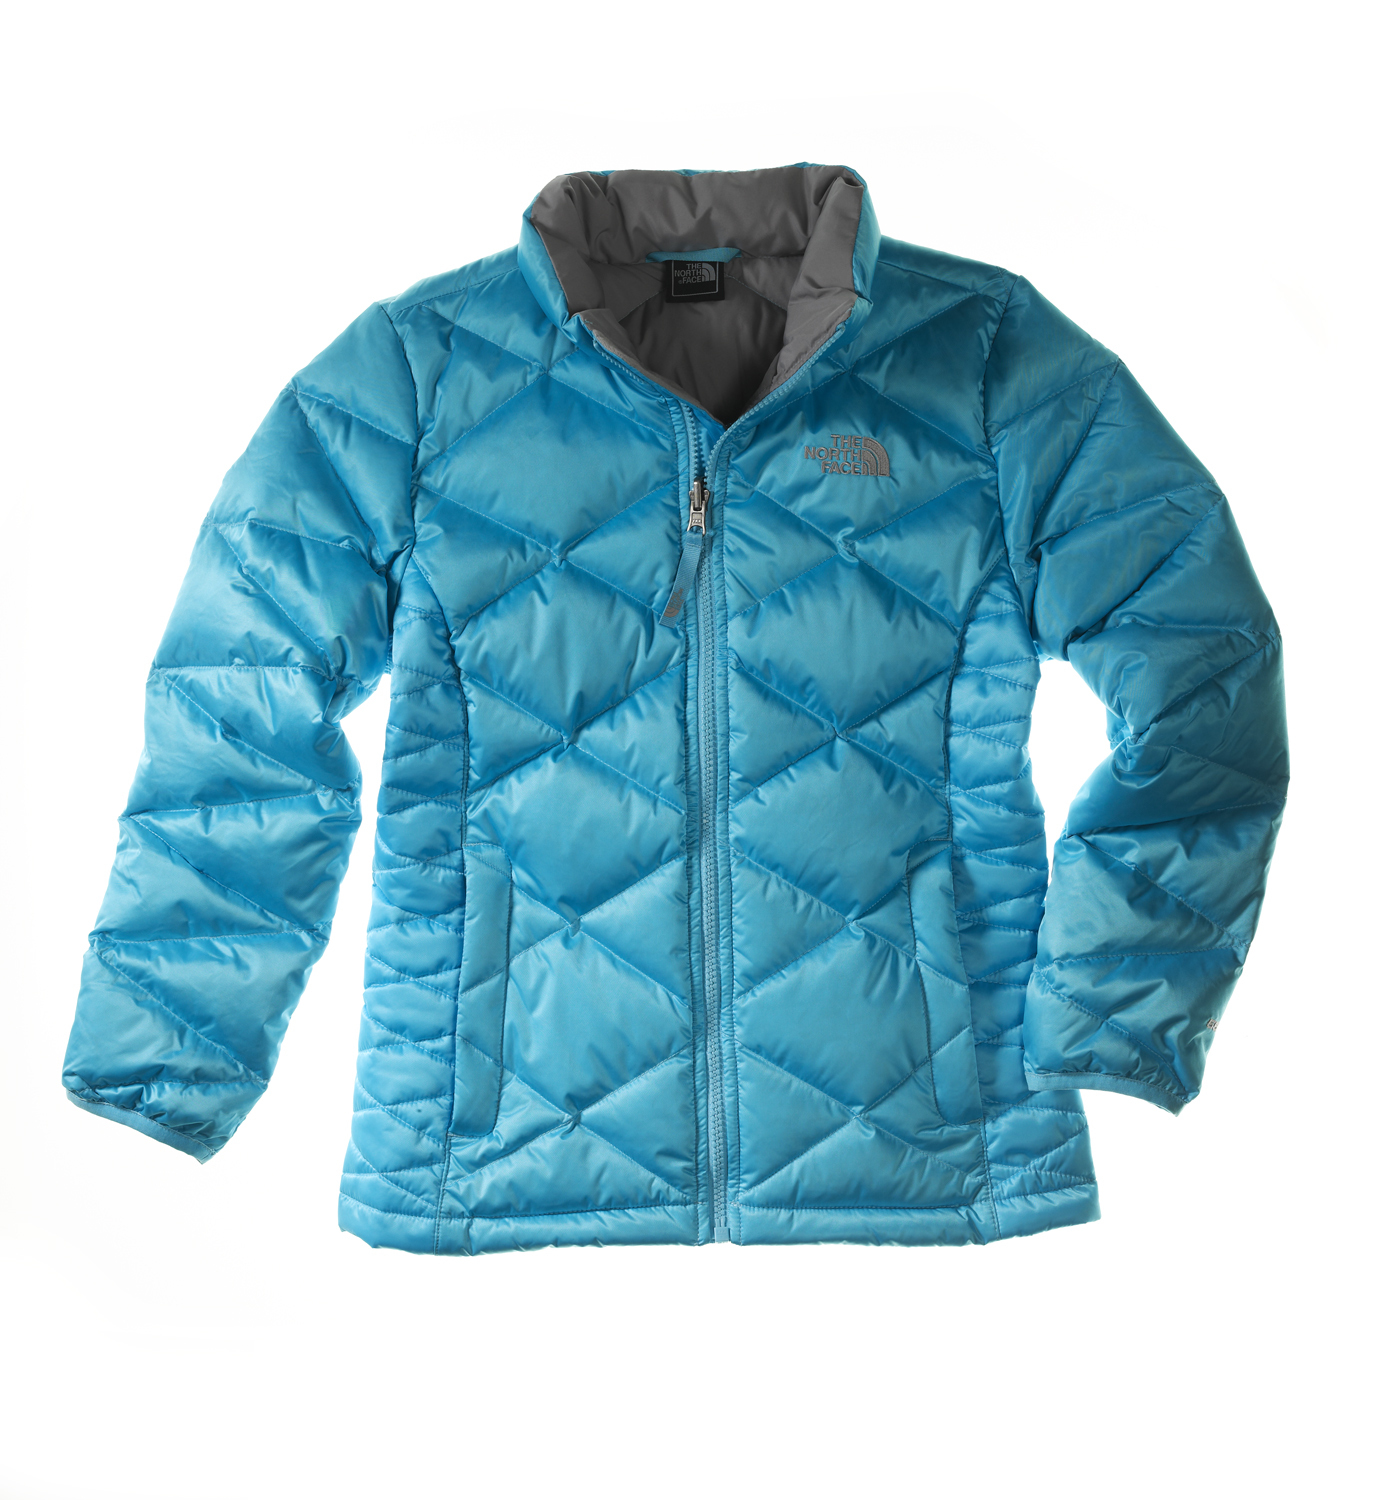 The North Face Jacket $99, available at select Macy's (Photo: Business Wire)